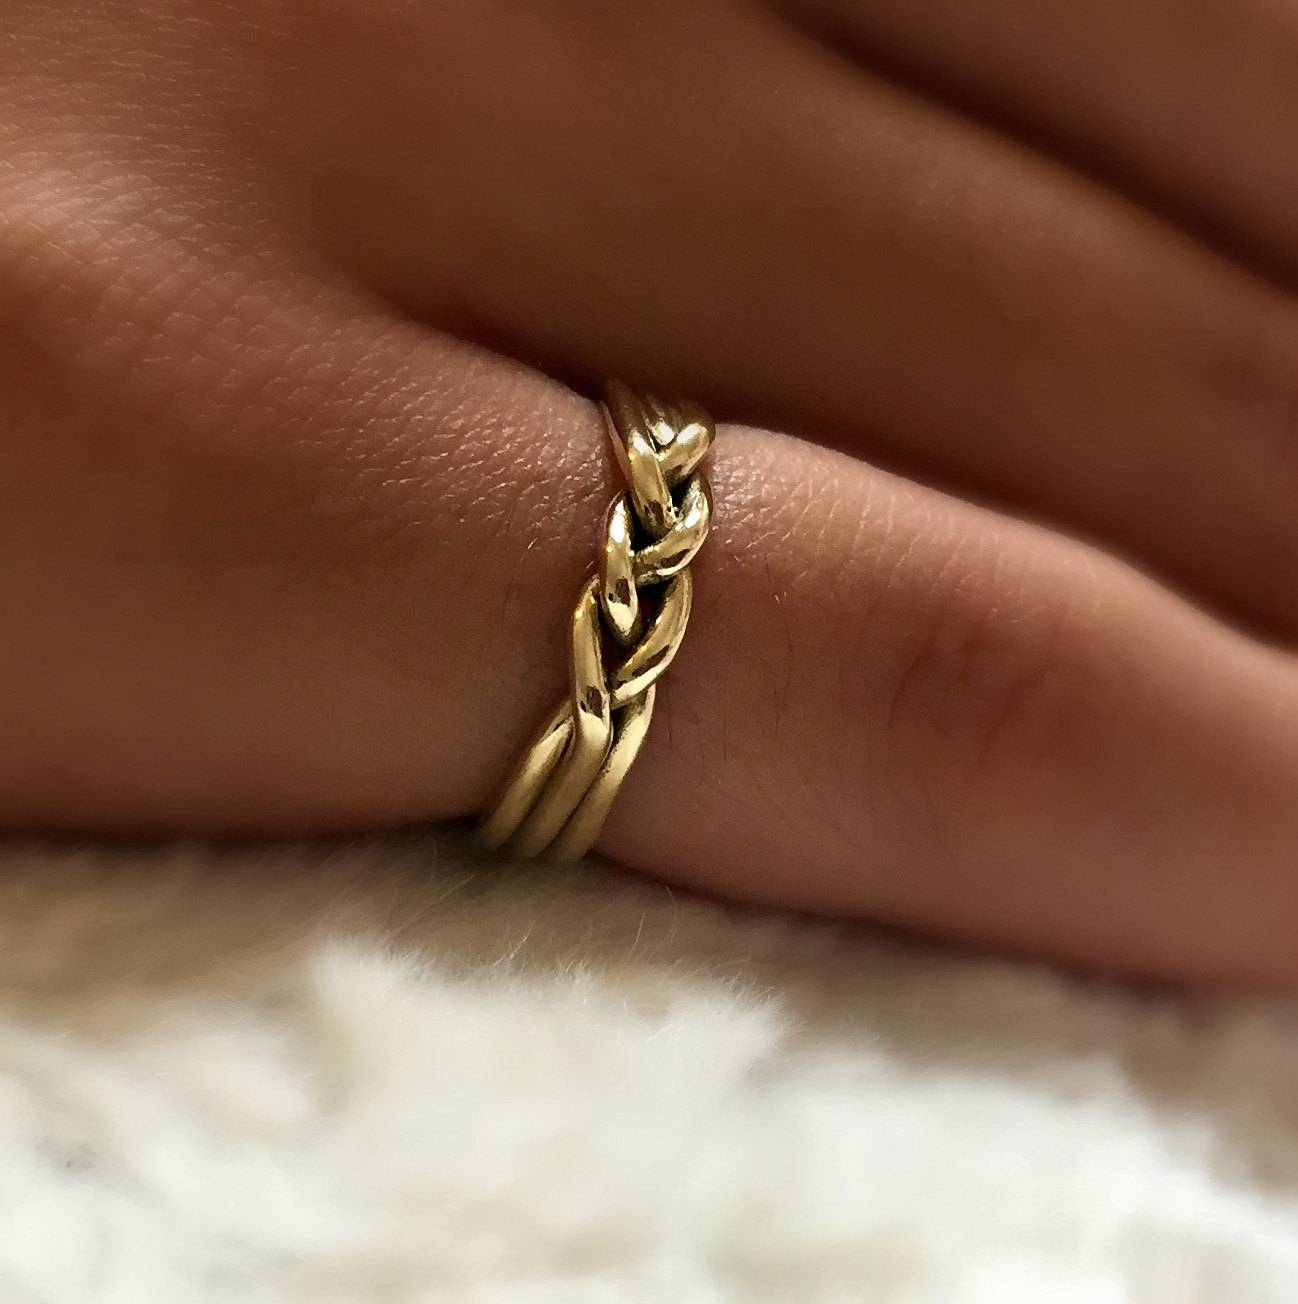 14 Karat Gold Ring Gold Wedding Ring Braided Wedding Ring Intended For 14 Carat Gold Wedding Bands (View 13 of 15)